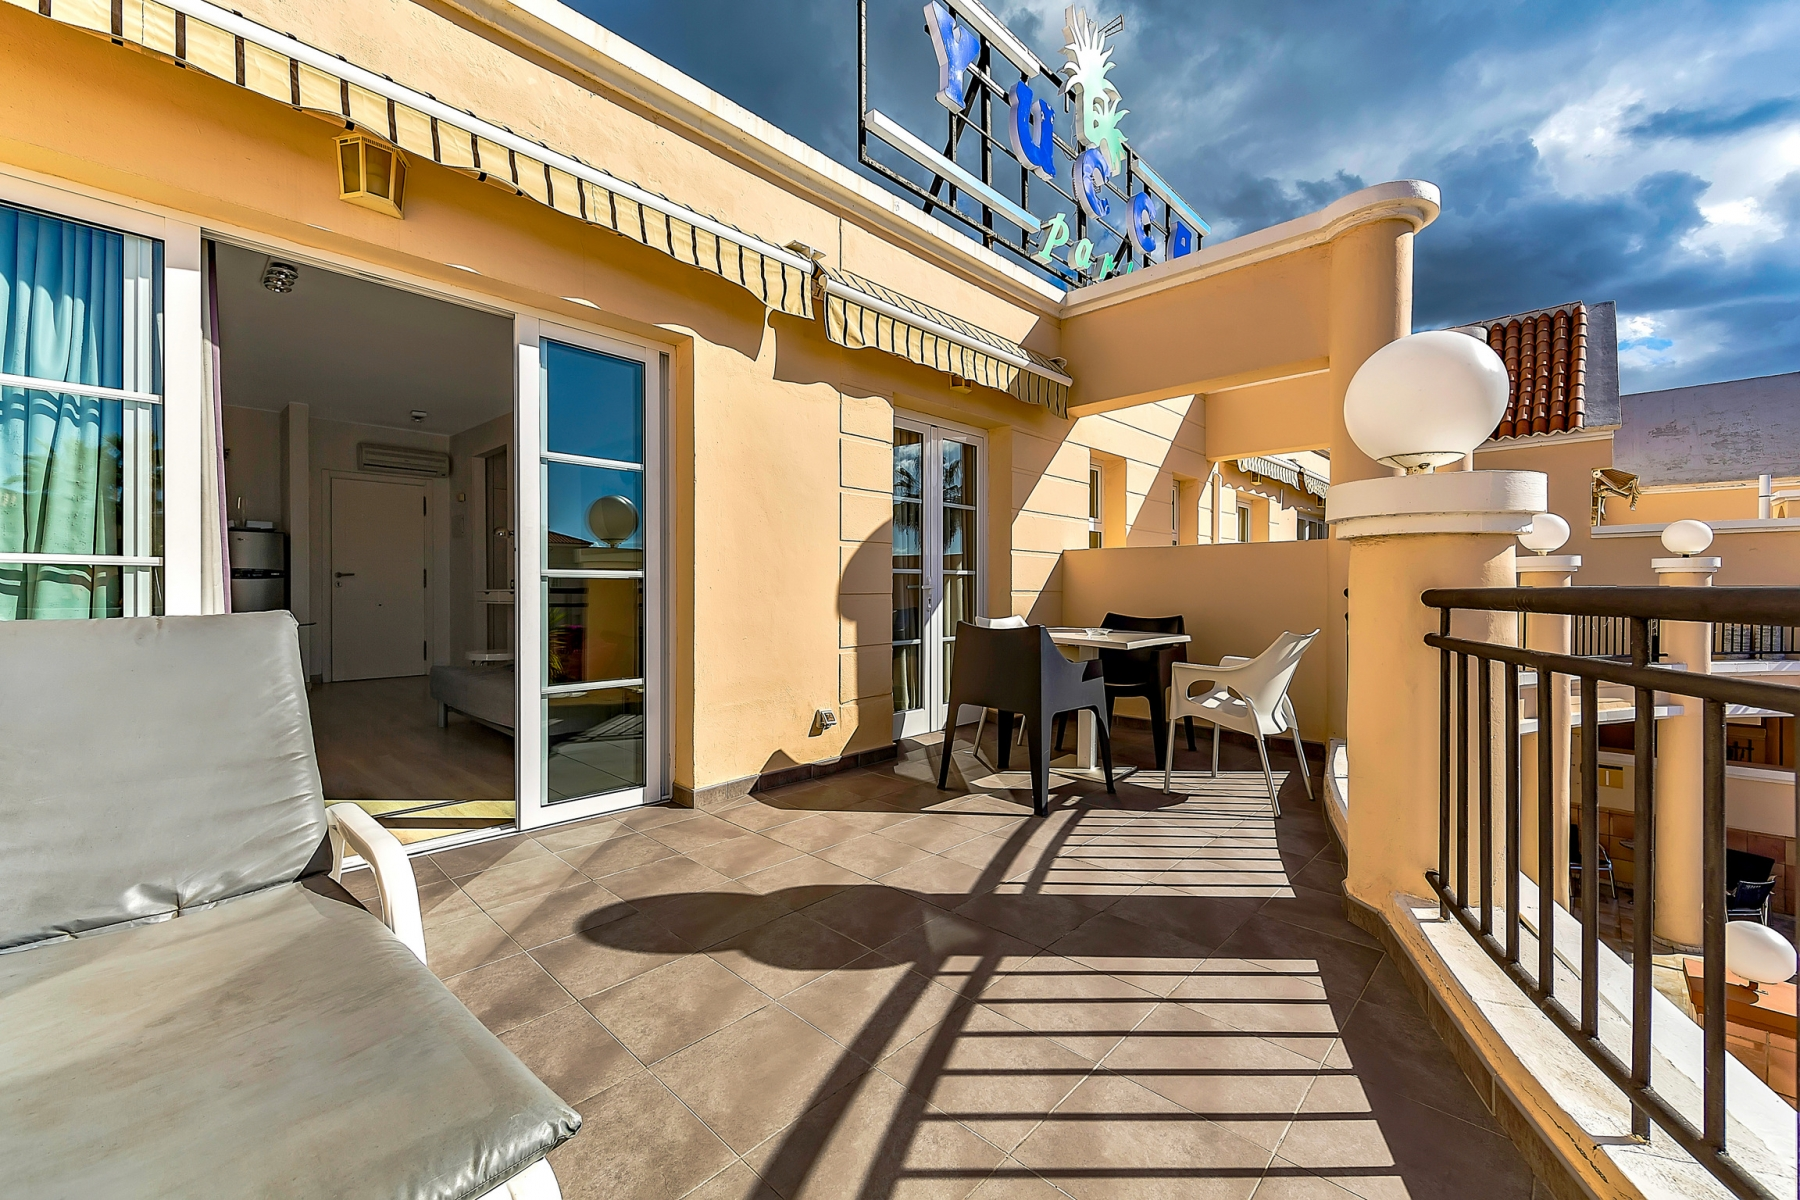 Properties for Sale in Tenerife, Canary Islands, Spain | SylkWayStar Real Estate. 1 bedroom apartment Yucca Park. Image-22535